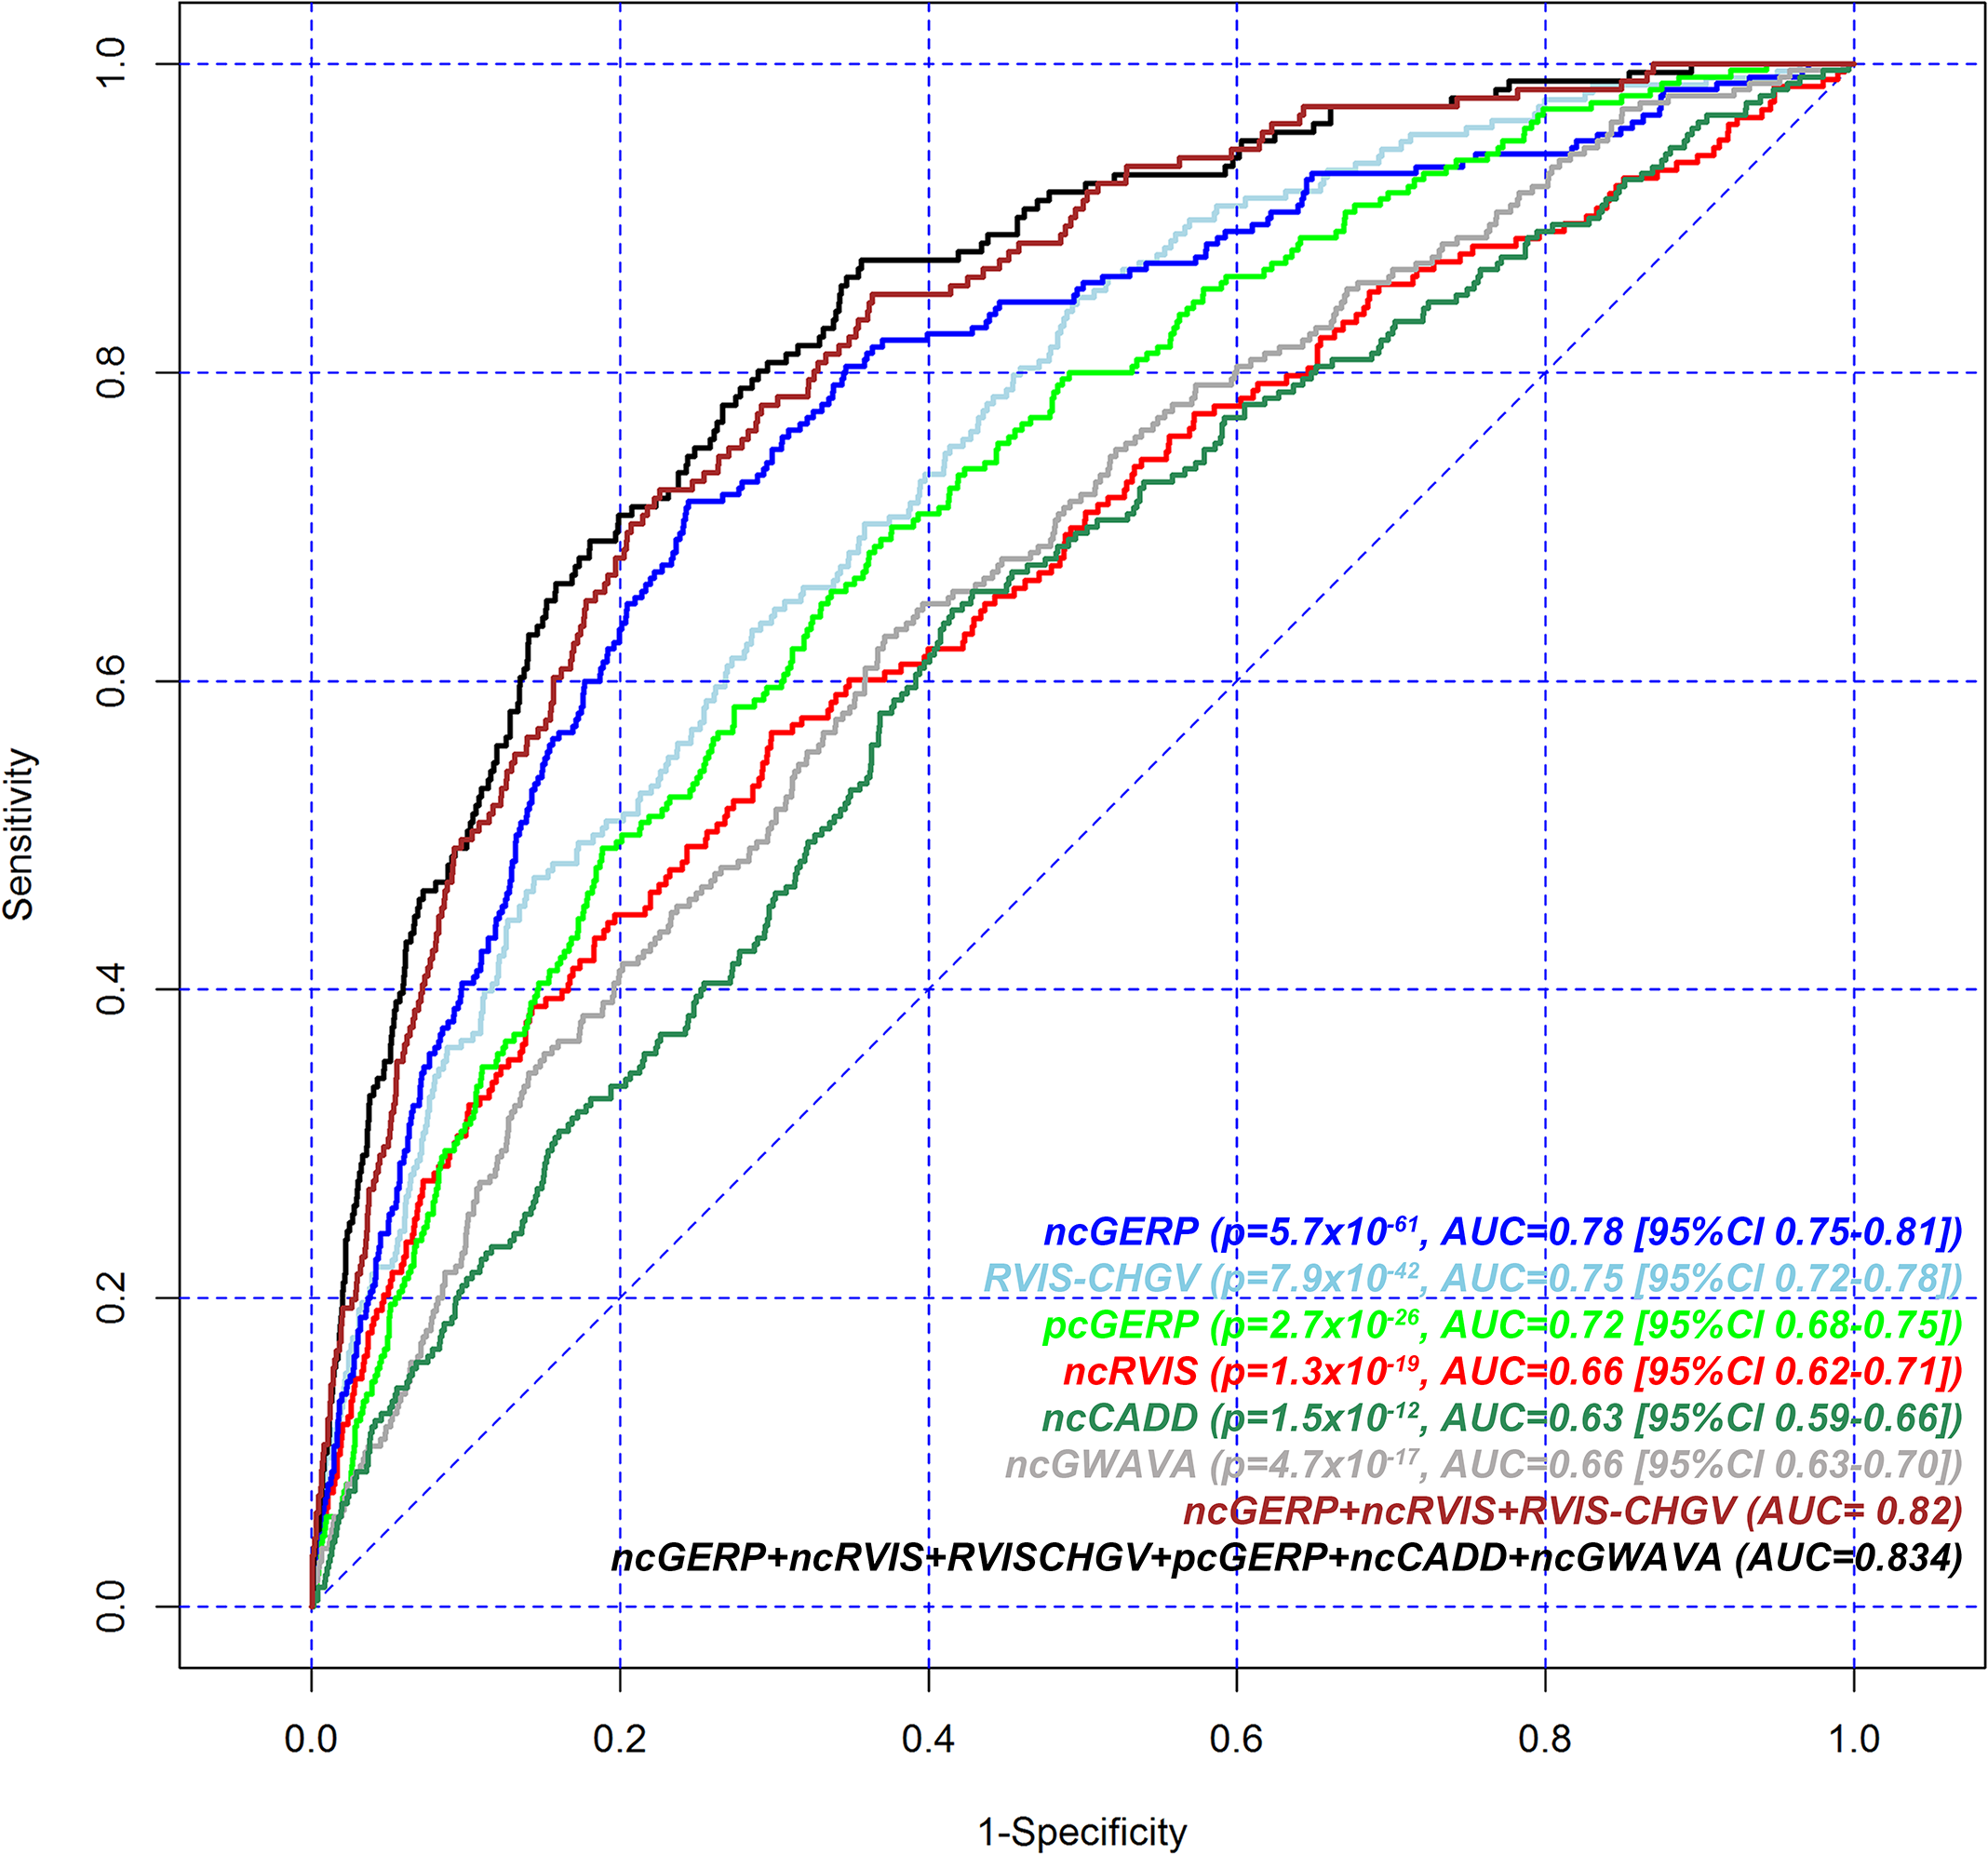 Receiver operating characteristic (ROC) curves to measure the ability of RVIS-CHGV, ncRVIS, pcGERP, ncGERP, ncCADD, ncGWAVA scores and two joint models to discriminate genes reported among ClinGen's dosage sensitivity map from the rest of the human genome.